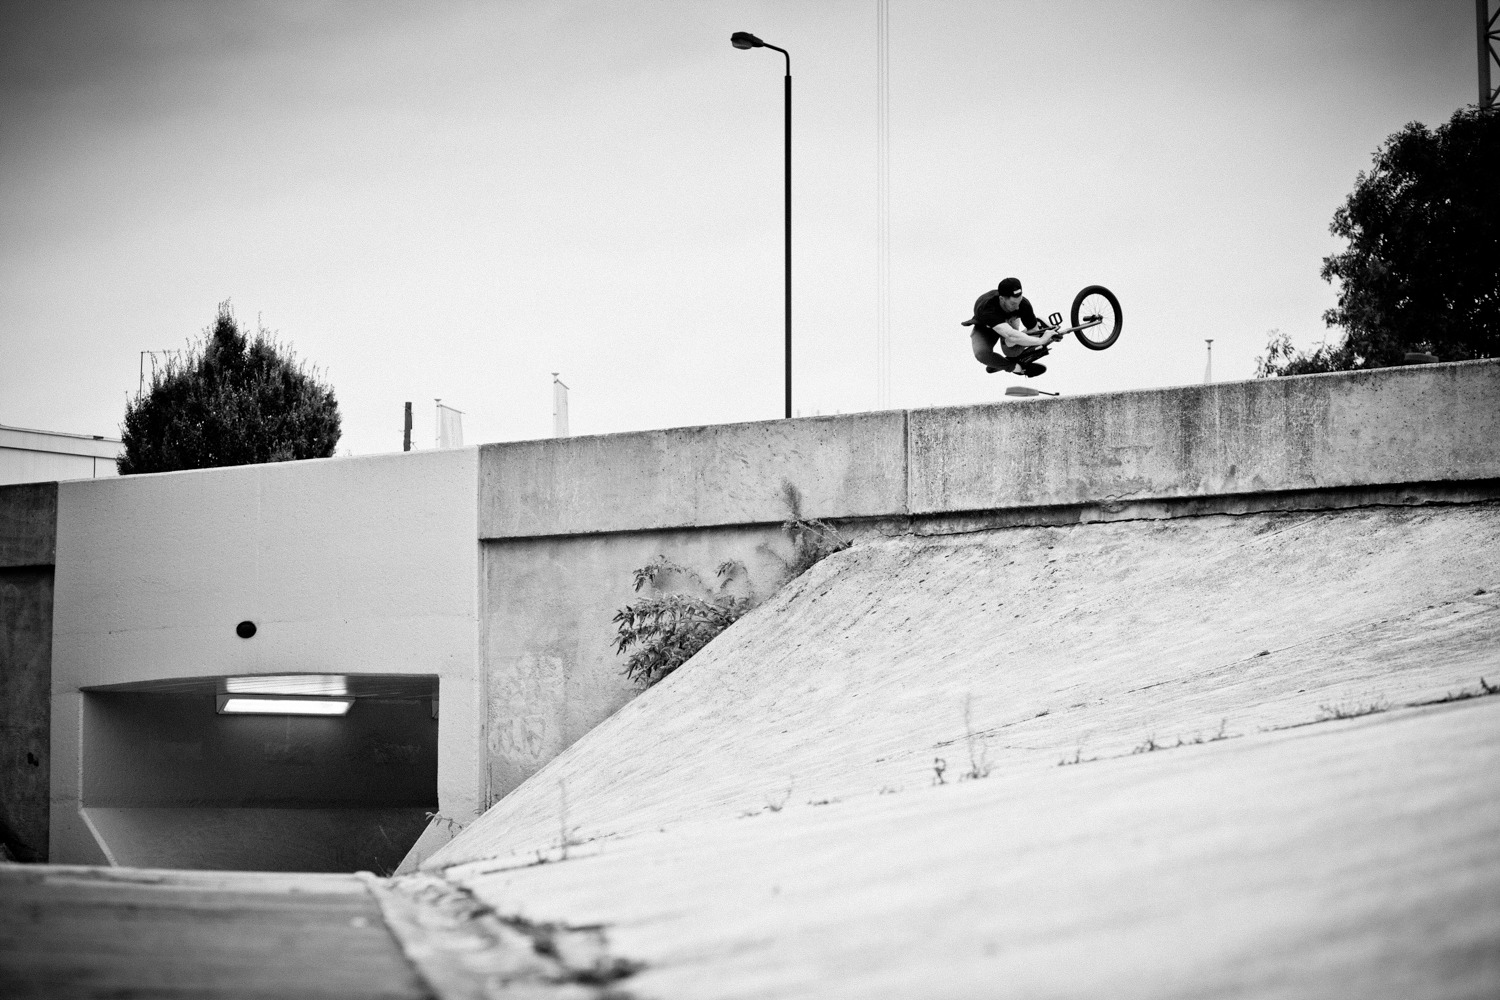 I would say that there have been quite a few photos of a wallride to table taken at this bank to wall at Wandsworth roundabout, but not everything has to be an 'NBD'. Not that Pete or myself give a shit. Pete Sawyer Bean refreshes your memory as to what a wallride table should look like anyway.